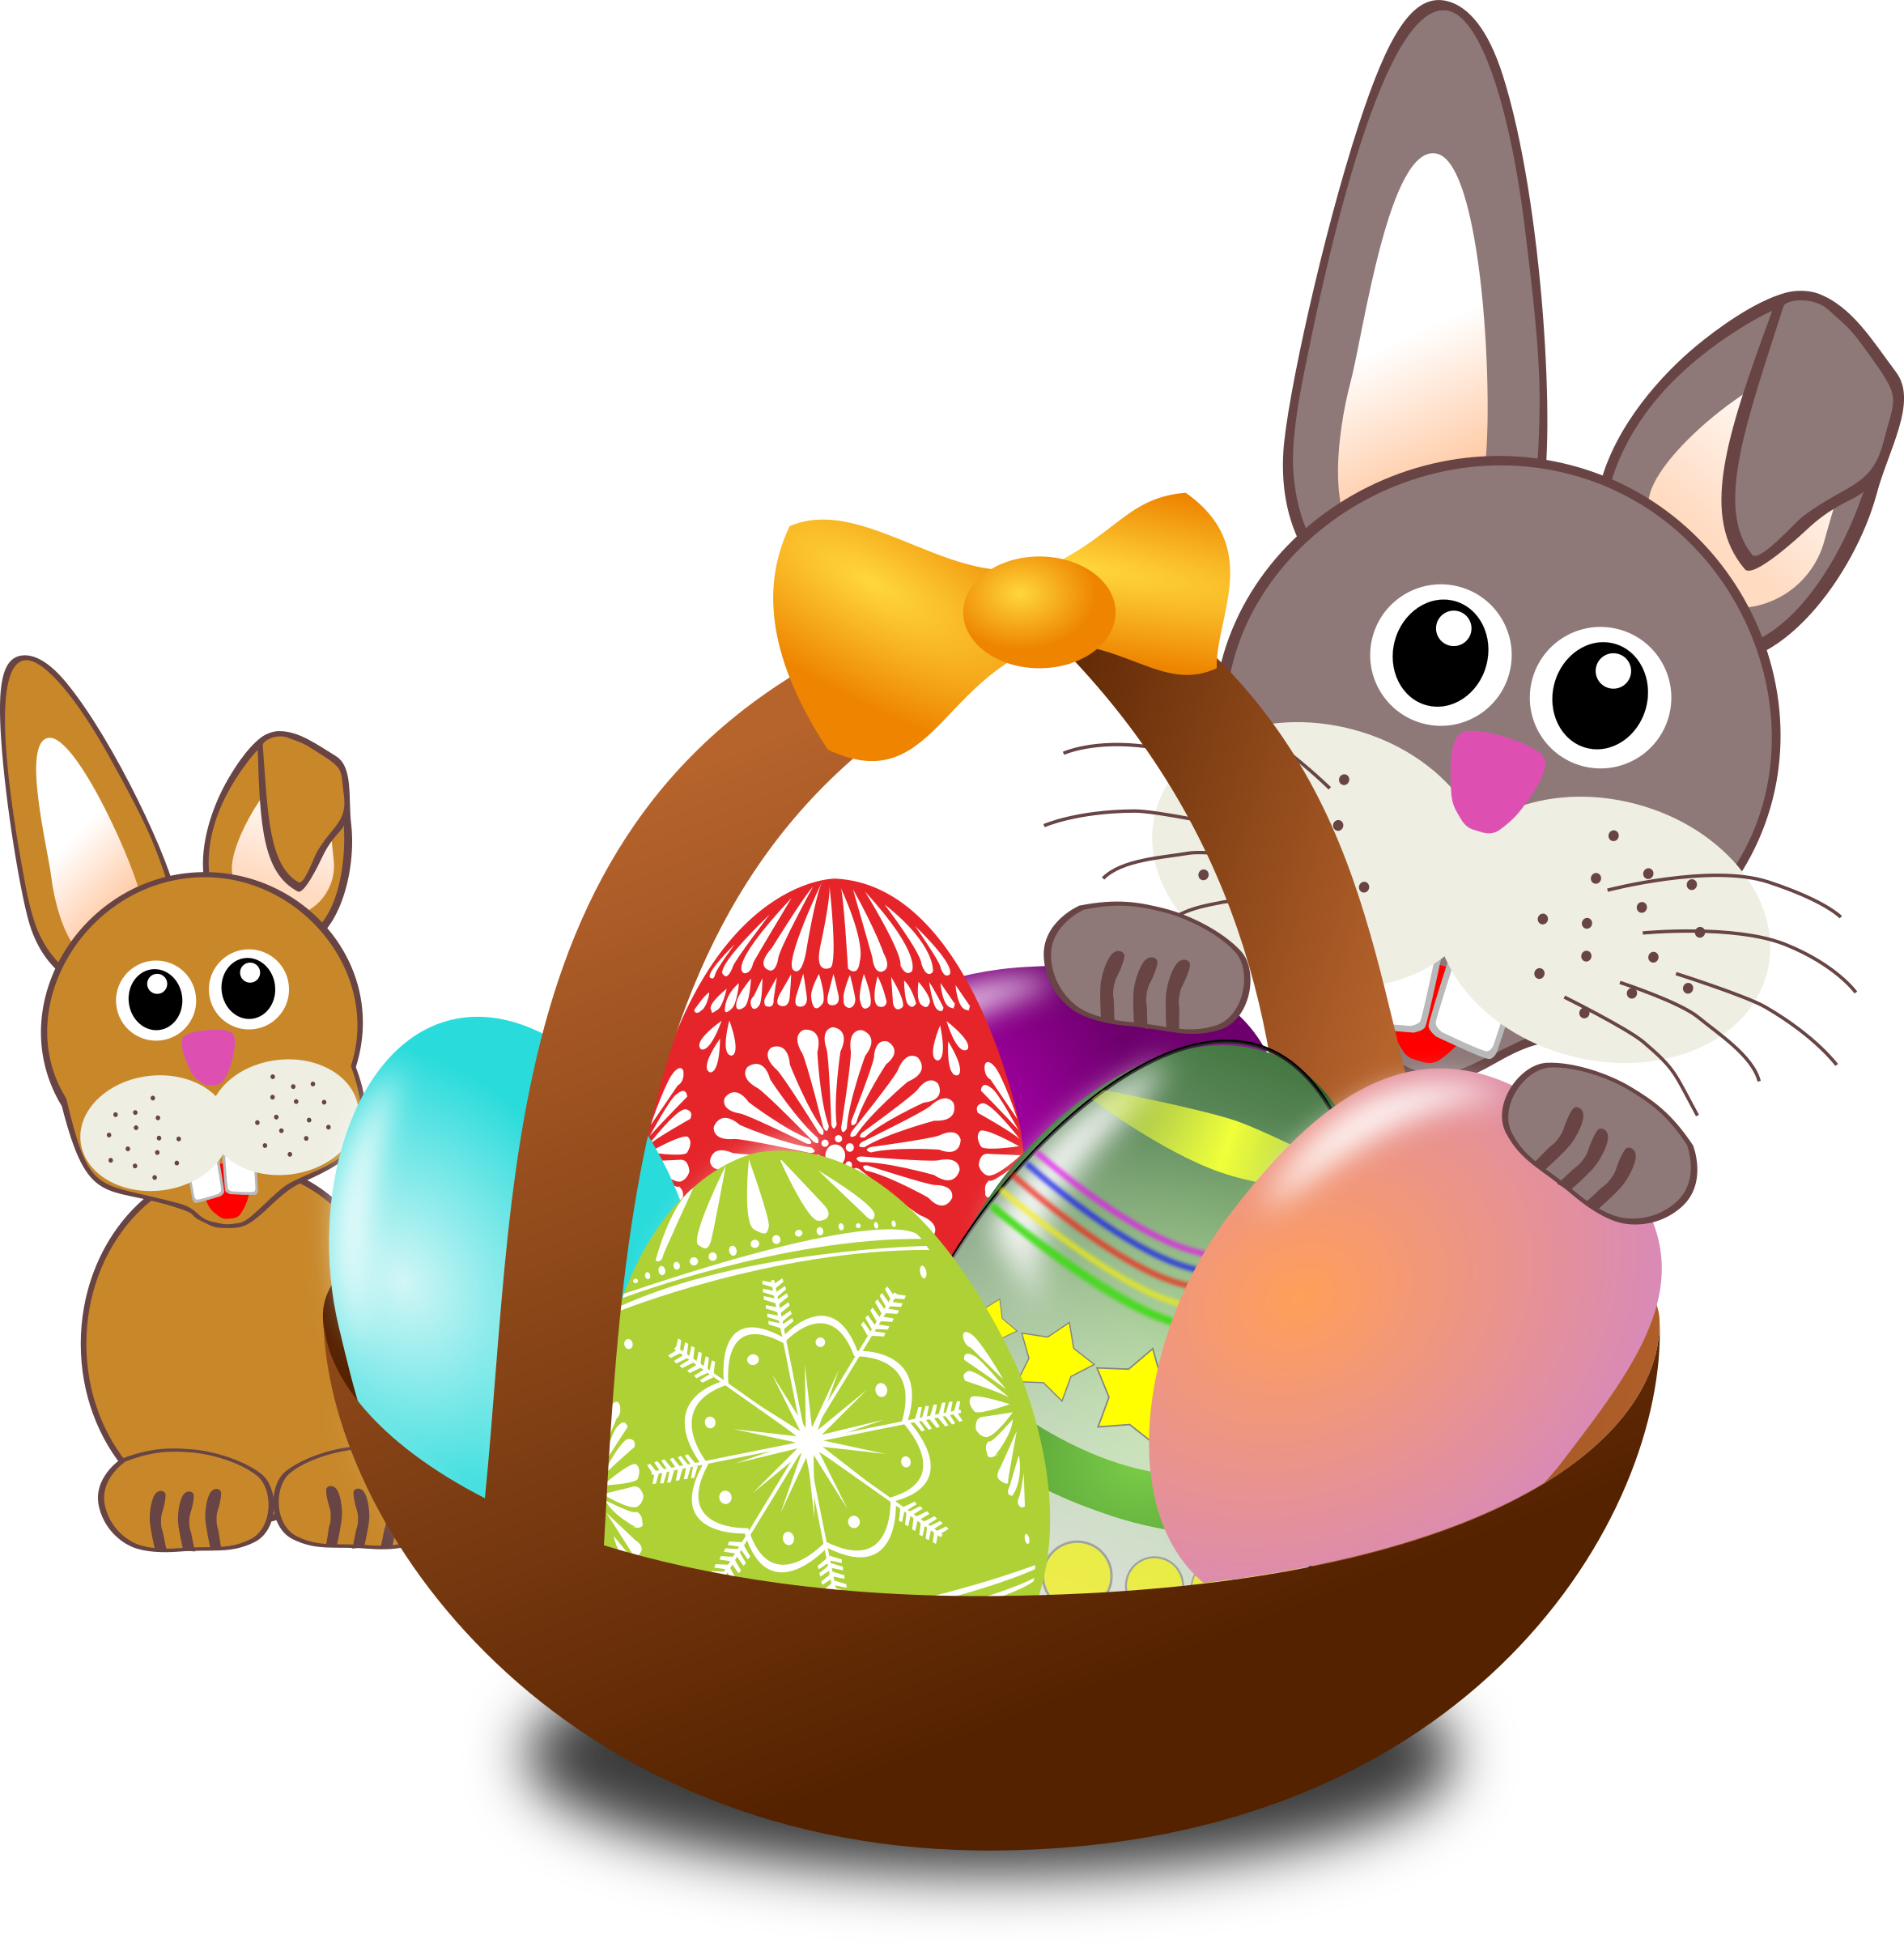 Free clipart basketball funny image Clipart - Funny bunny face with Easter eggs in a basket with baby rabbit image